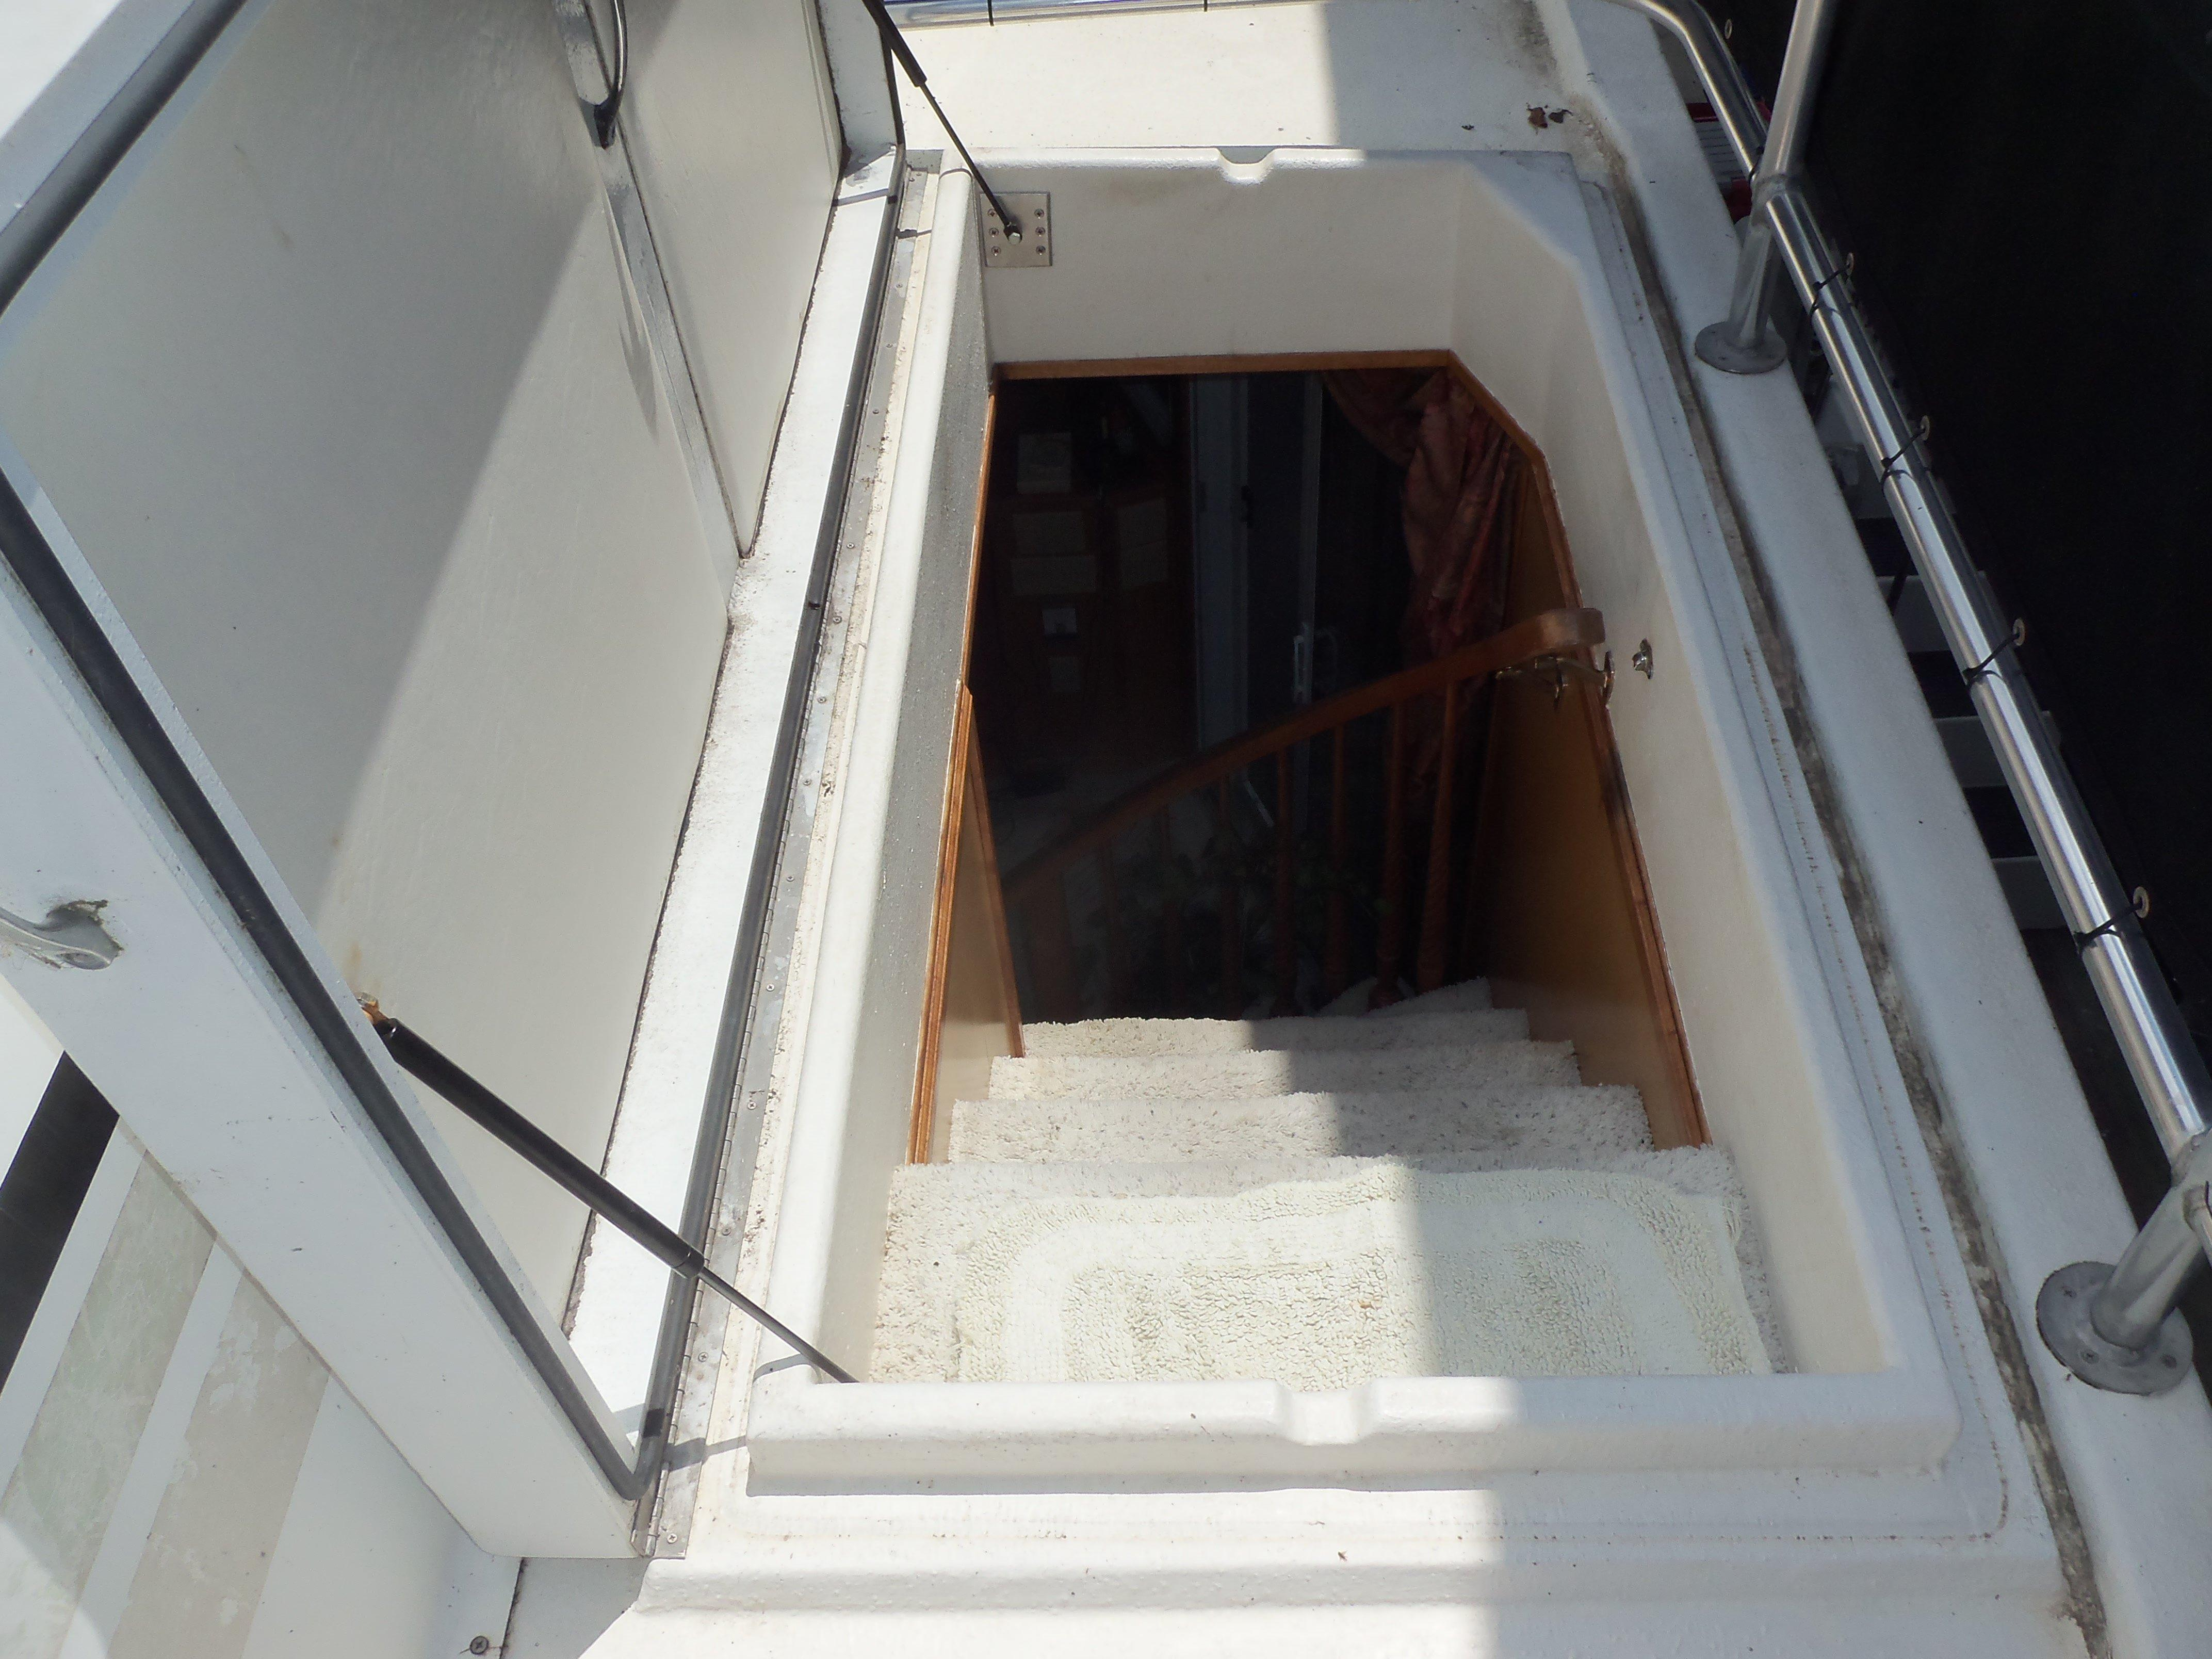 Forward Stairway from Upper Deck to Cabin